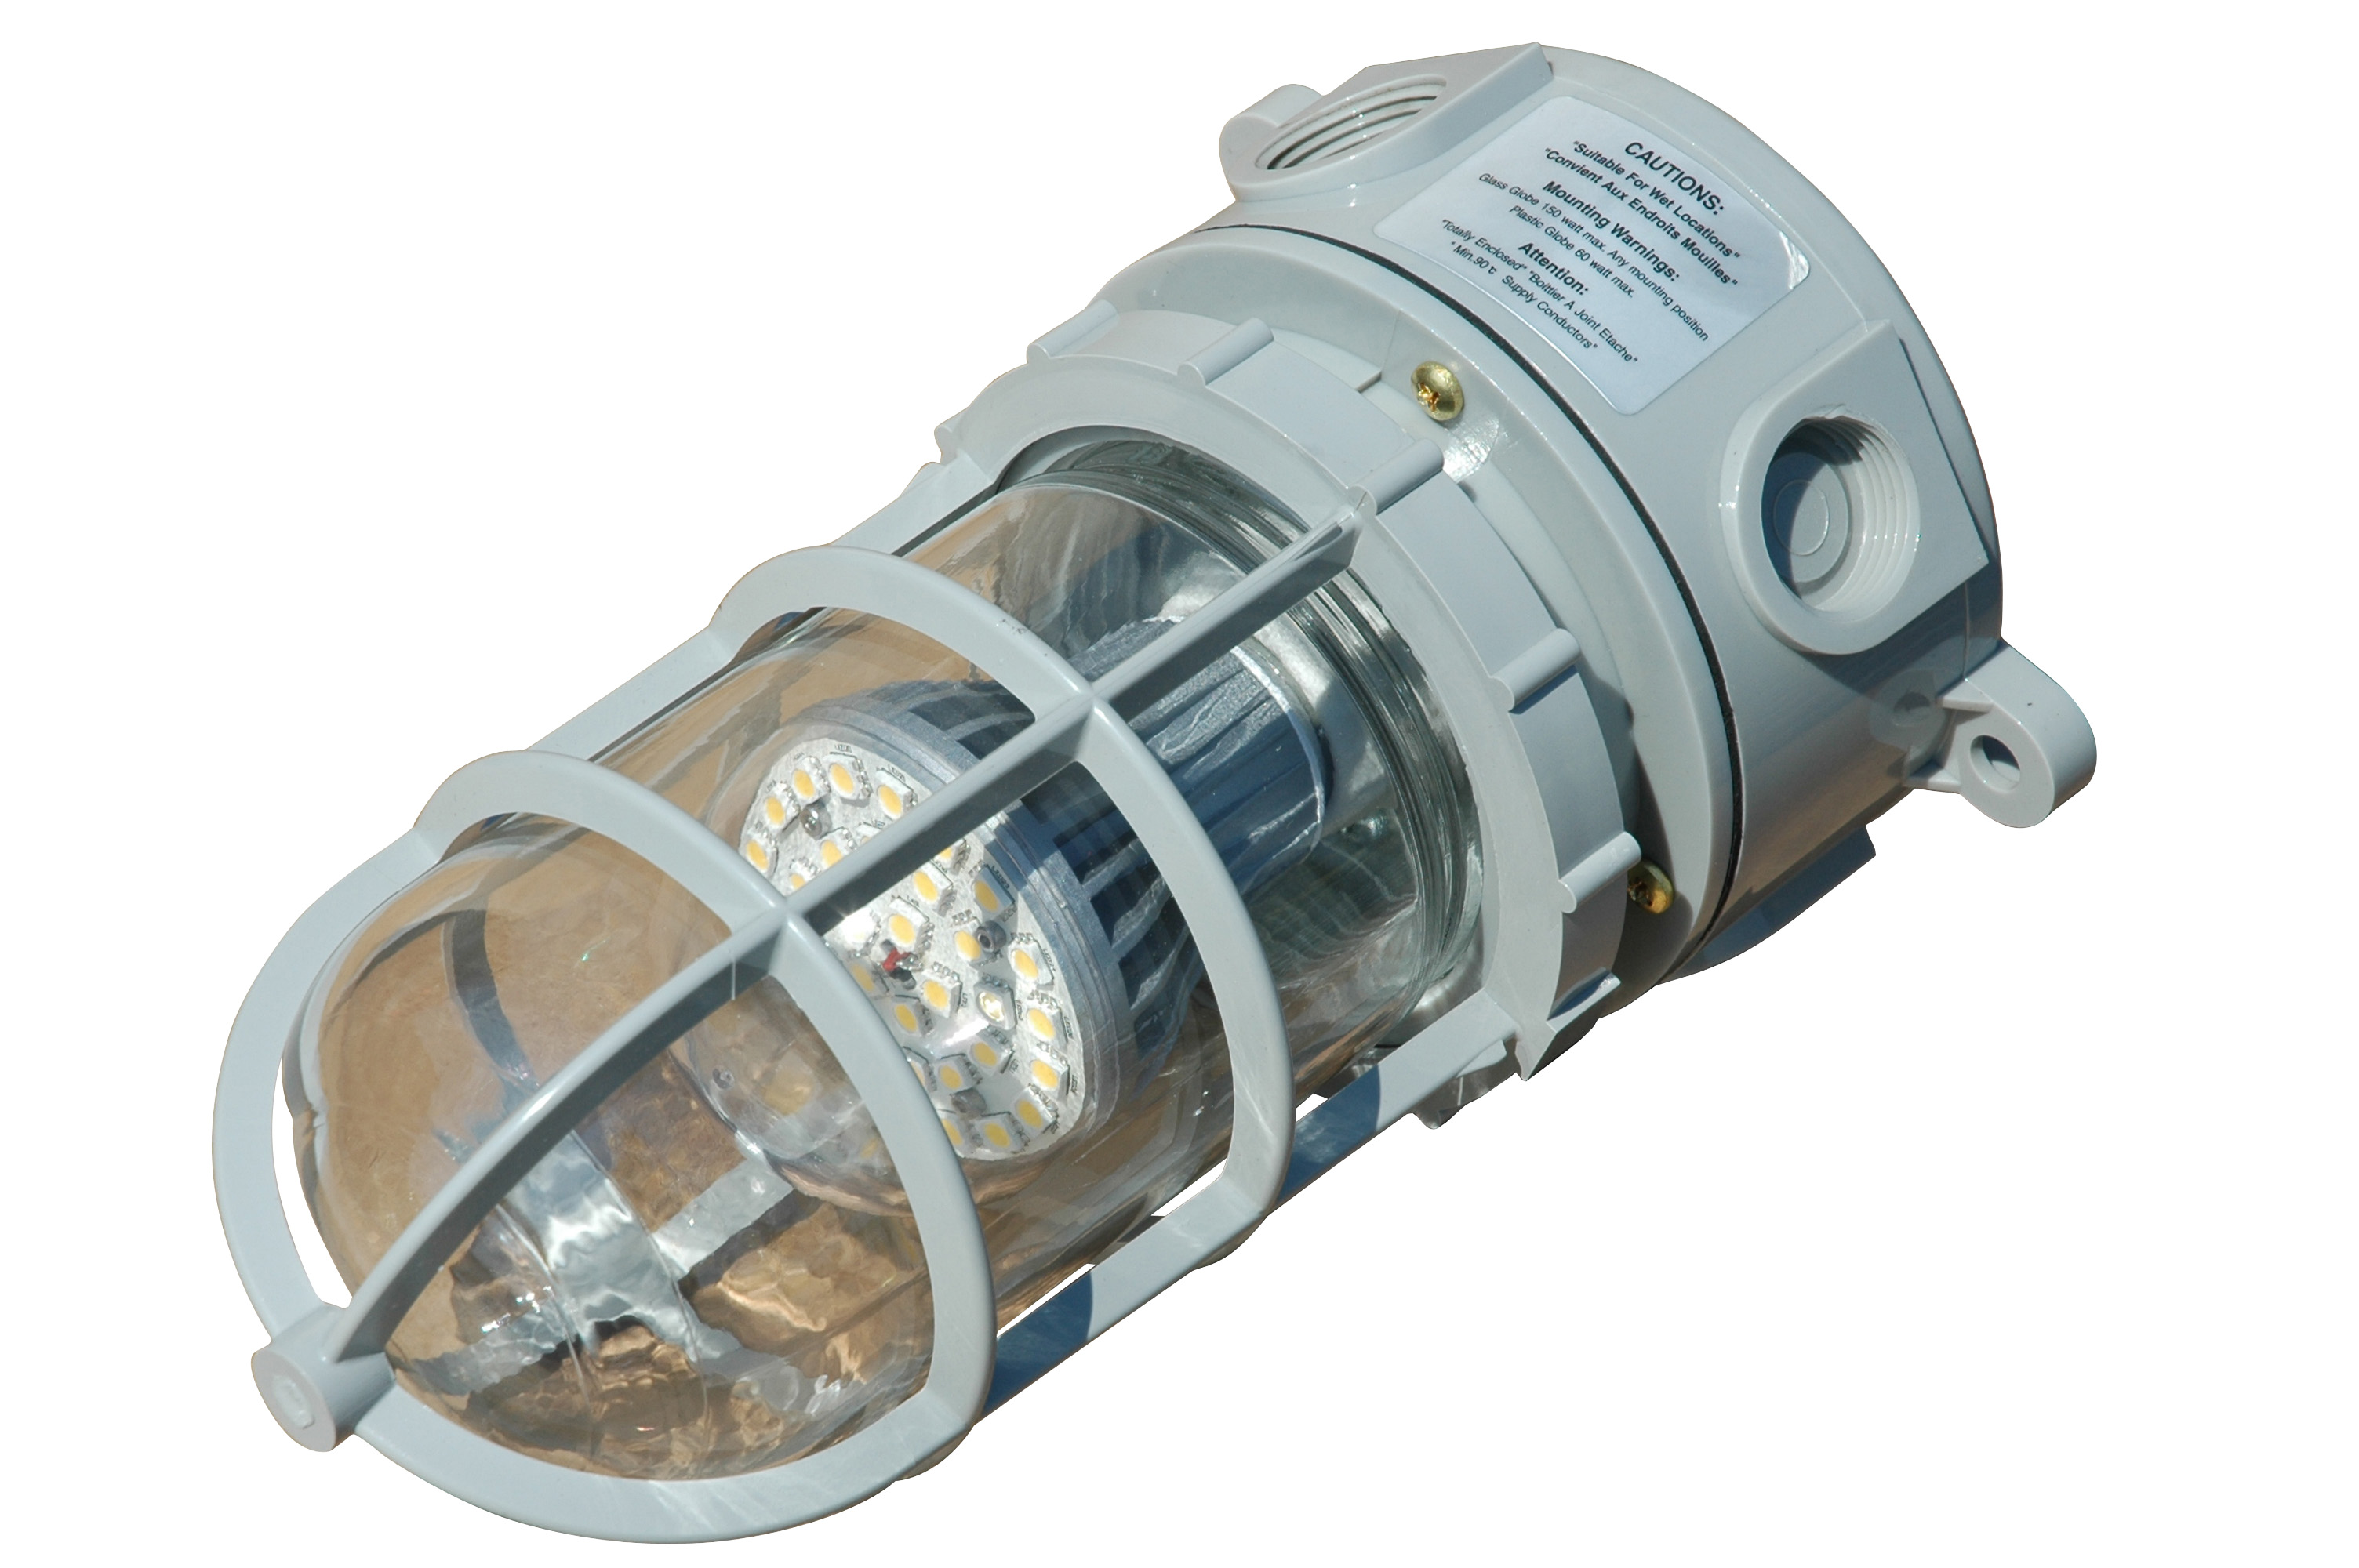 Magnalight Com Announces Addition Of Explosion Proof Led